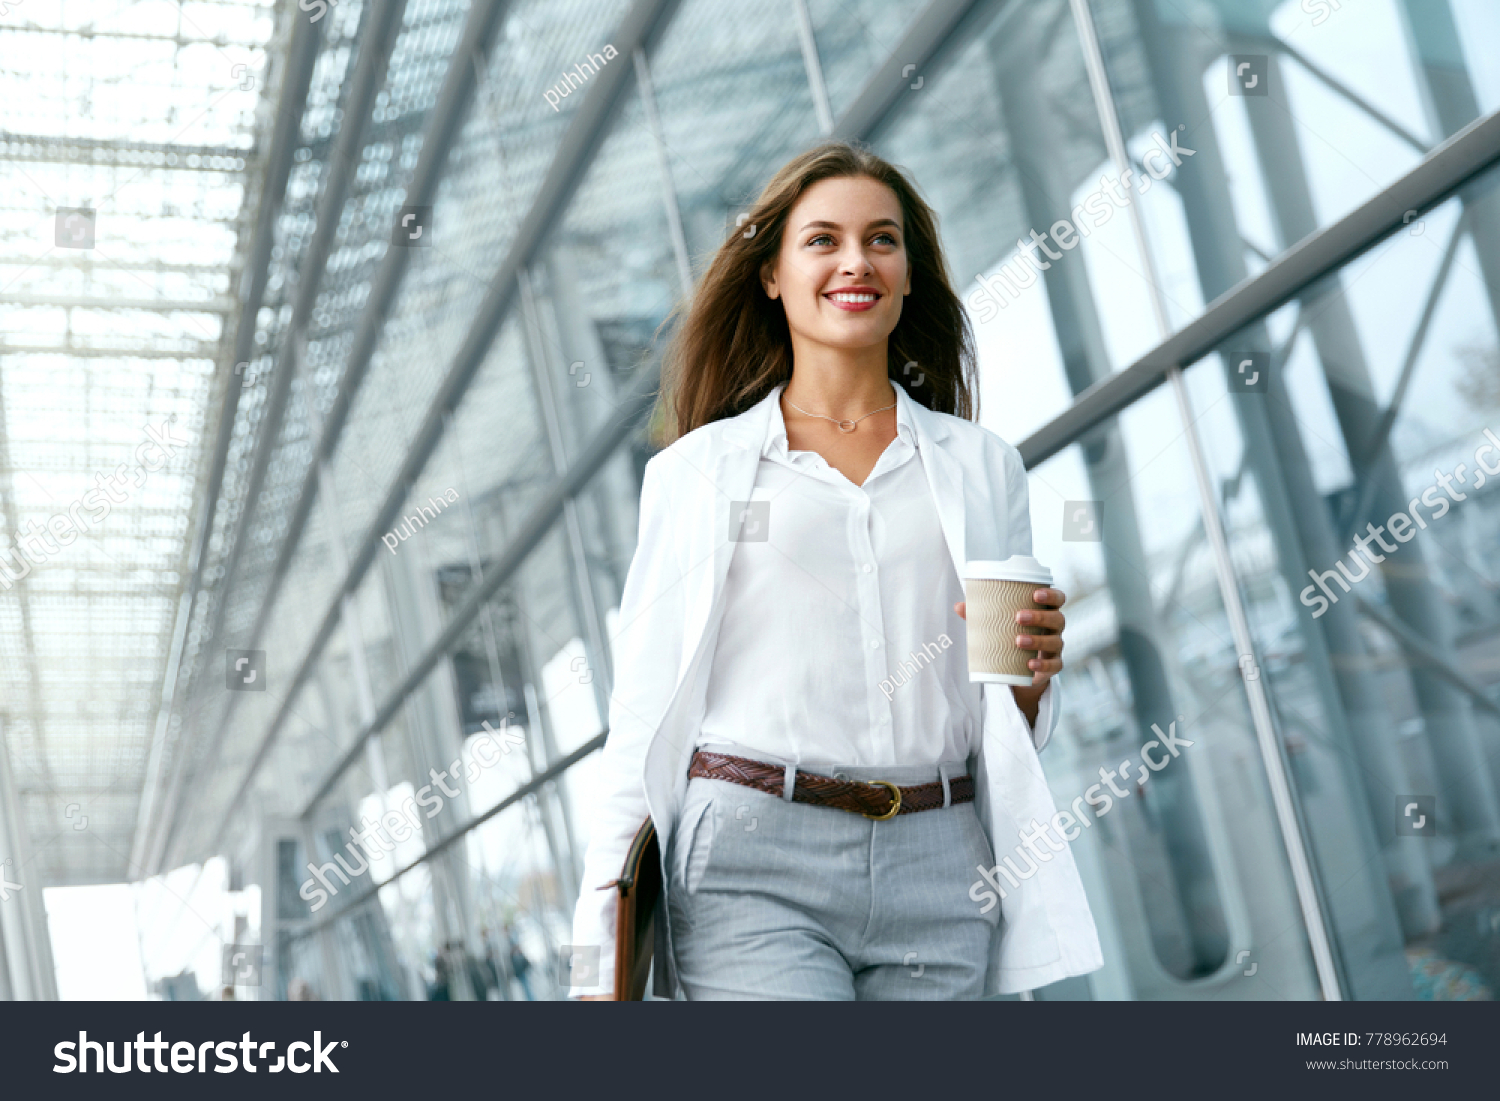 Beautiful Woman Going To Work With Coffee Walking Near Office Building. Portrait Of Successful Business Woman Holding Cup Of Hot Drink In Hand On Her Way To Work On City Street. High Resolution. #778962694